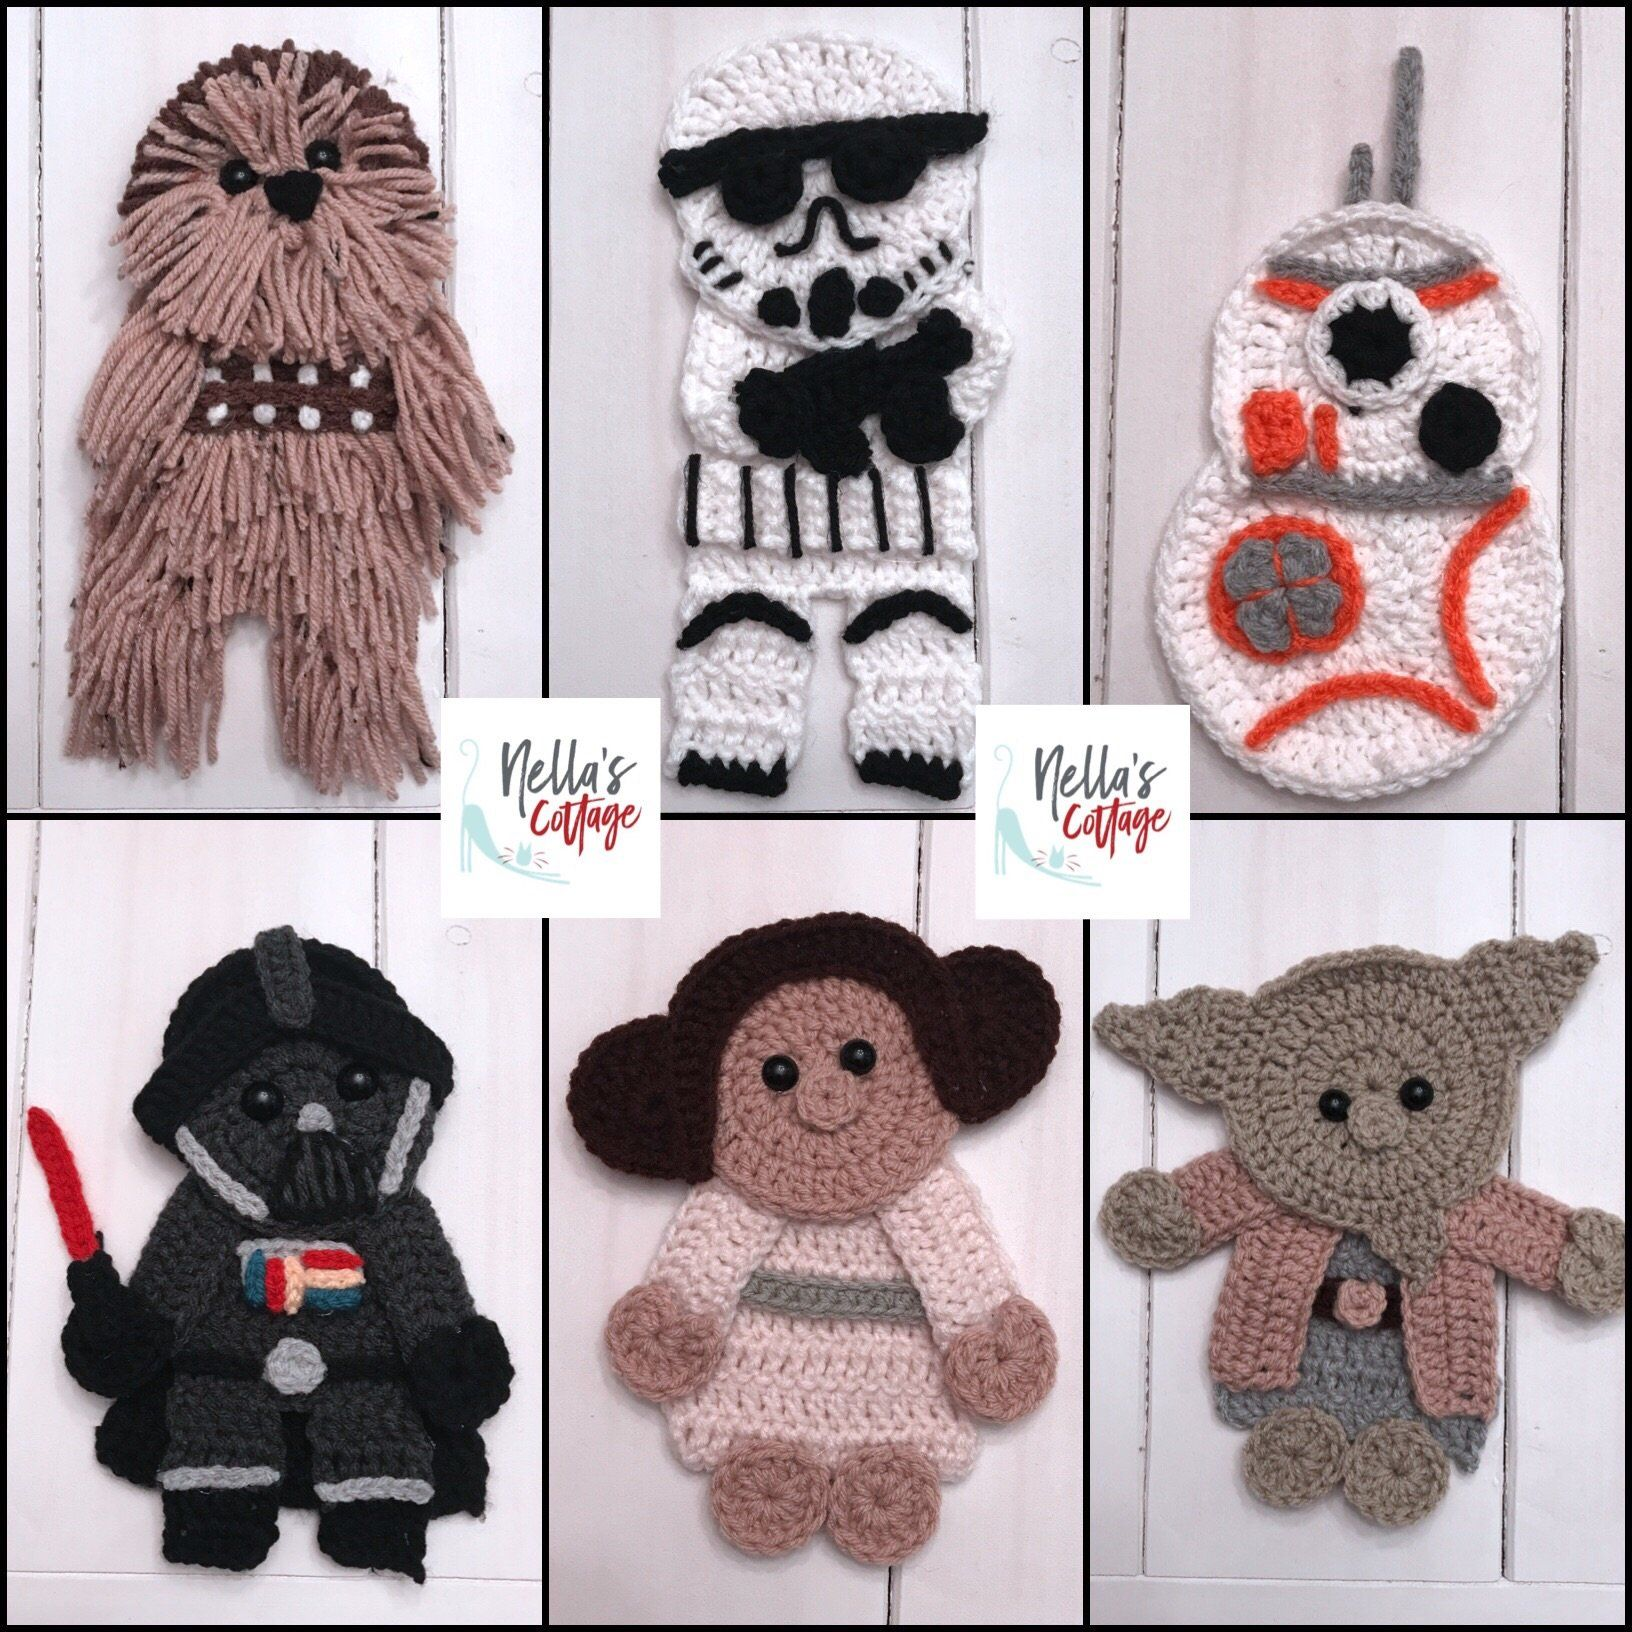 Star Wars Applique Patterns | Products | Pinterest